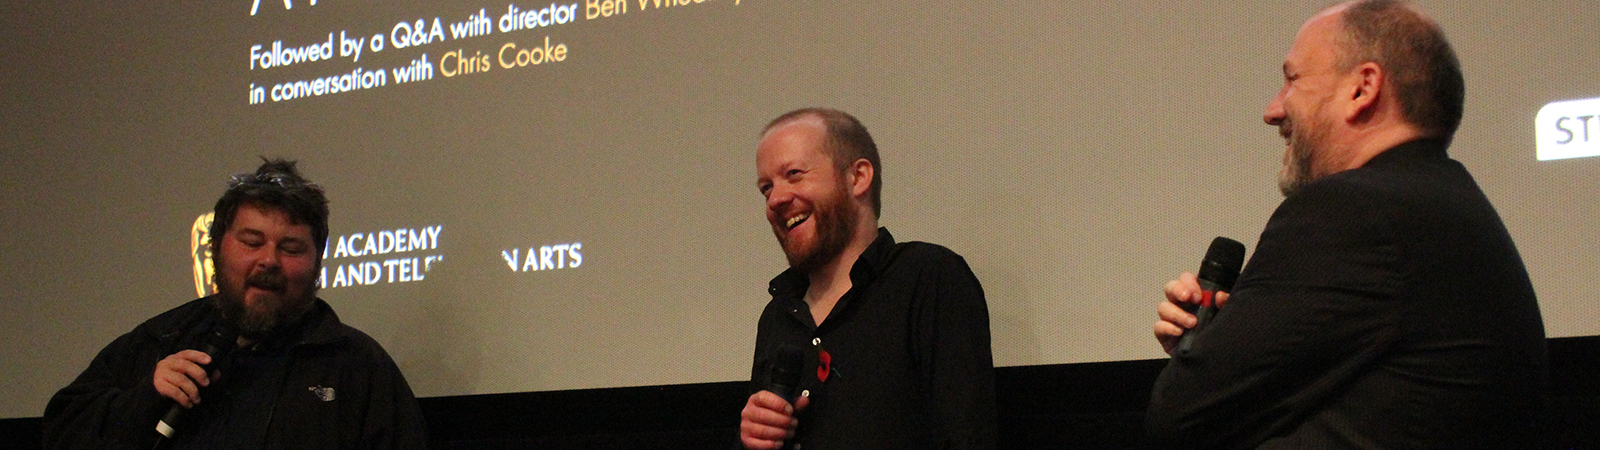 Ben Wheatley & Steve Oram (Sightseers) - Mayhem 2012